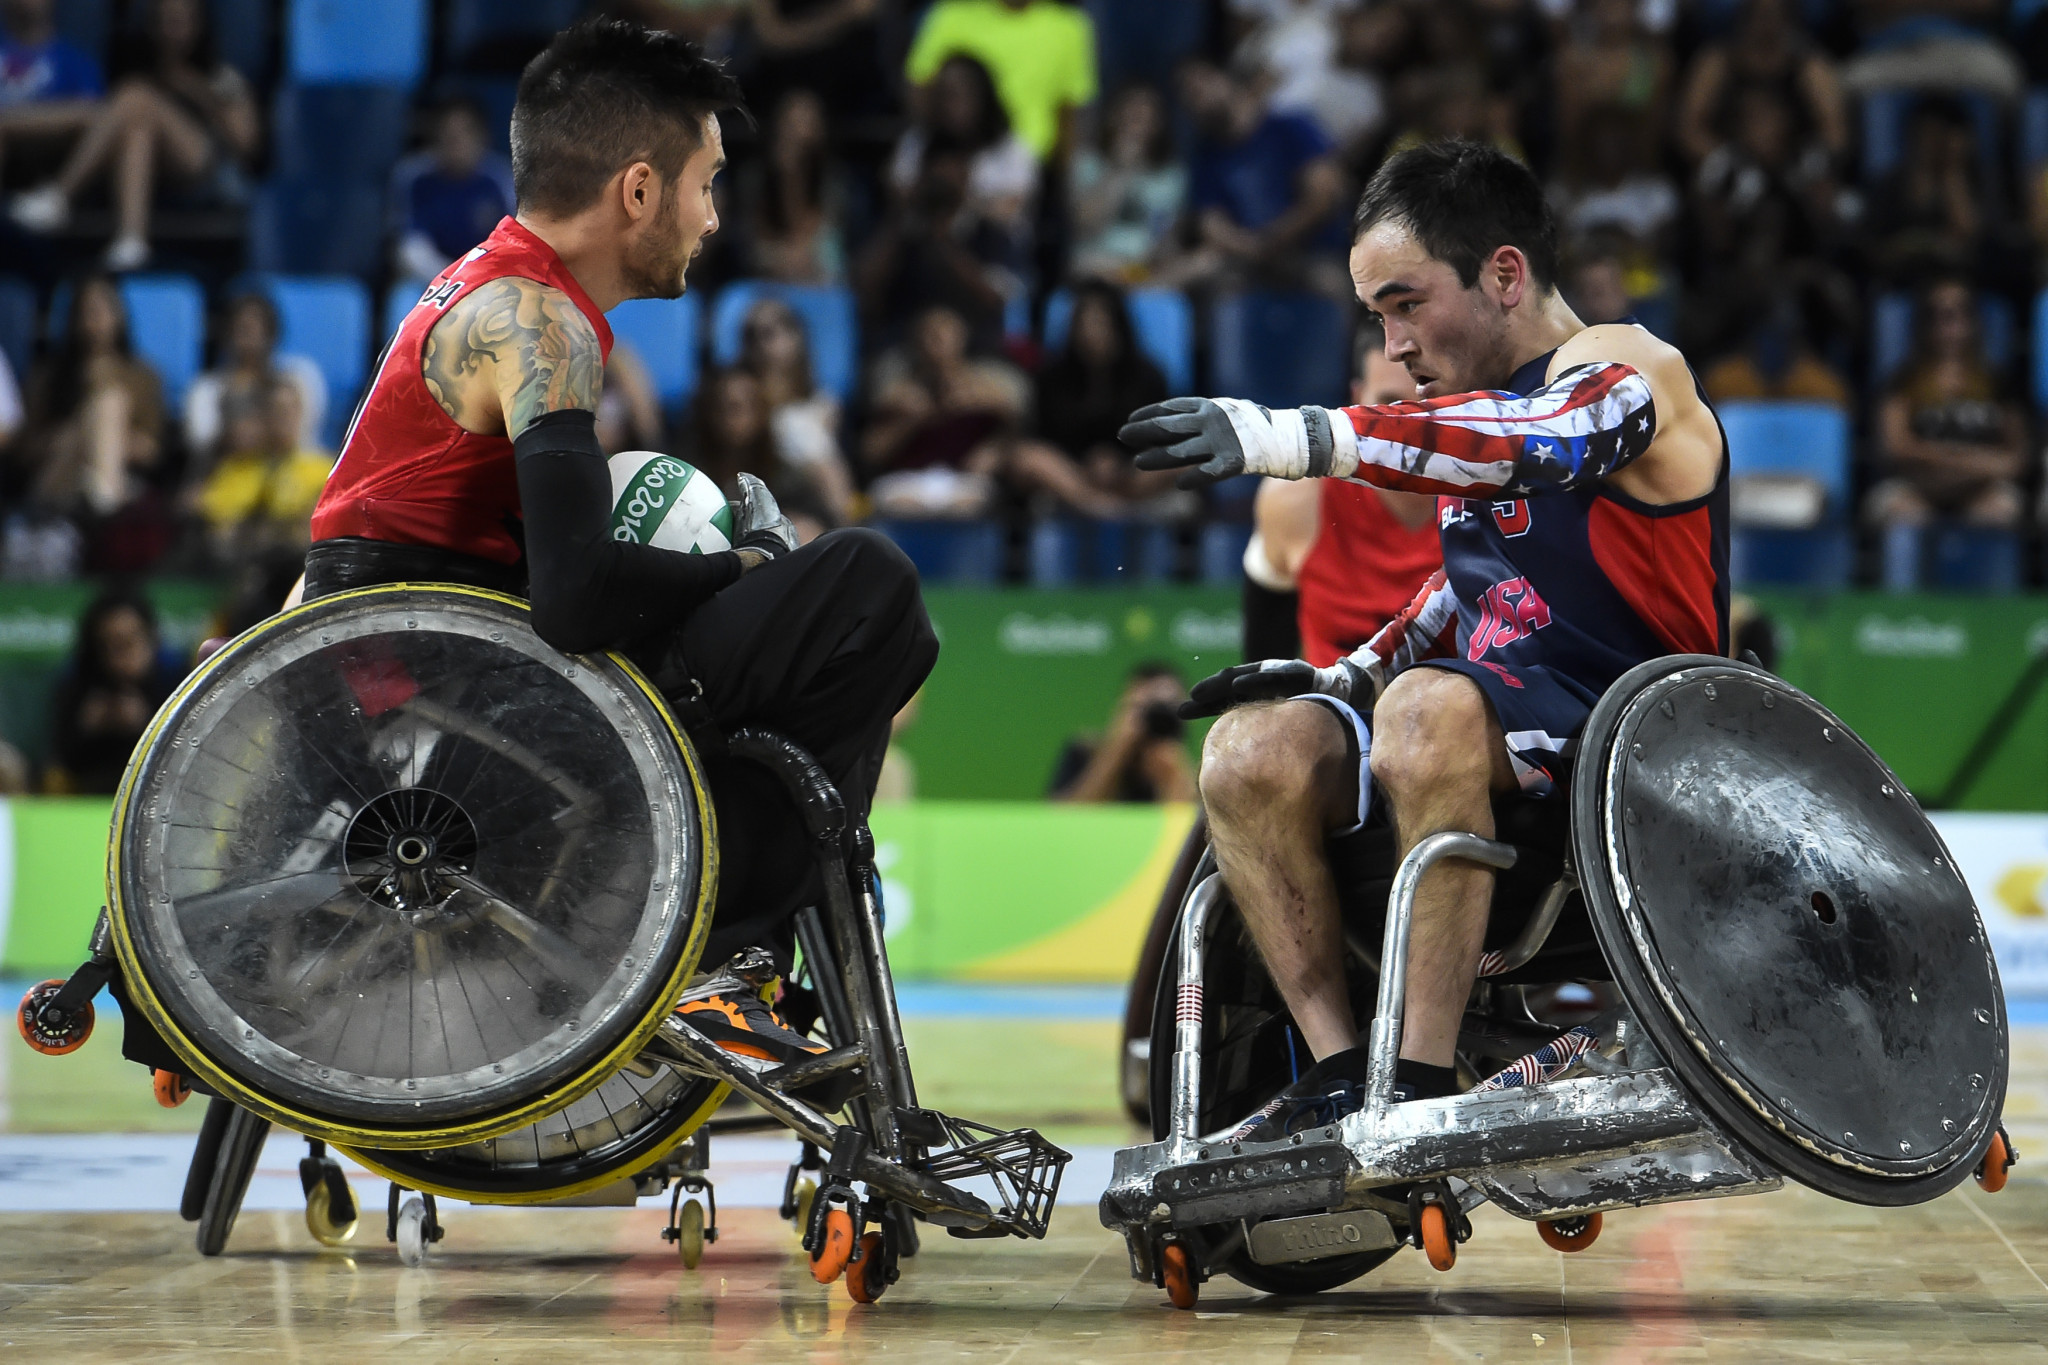 Dr. Kenneth Lee is no stranger to wheelchair rugby having worked with the IWRF since 2004 ©Getty Images